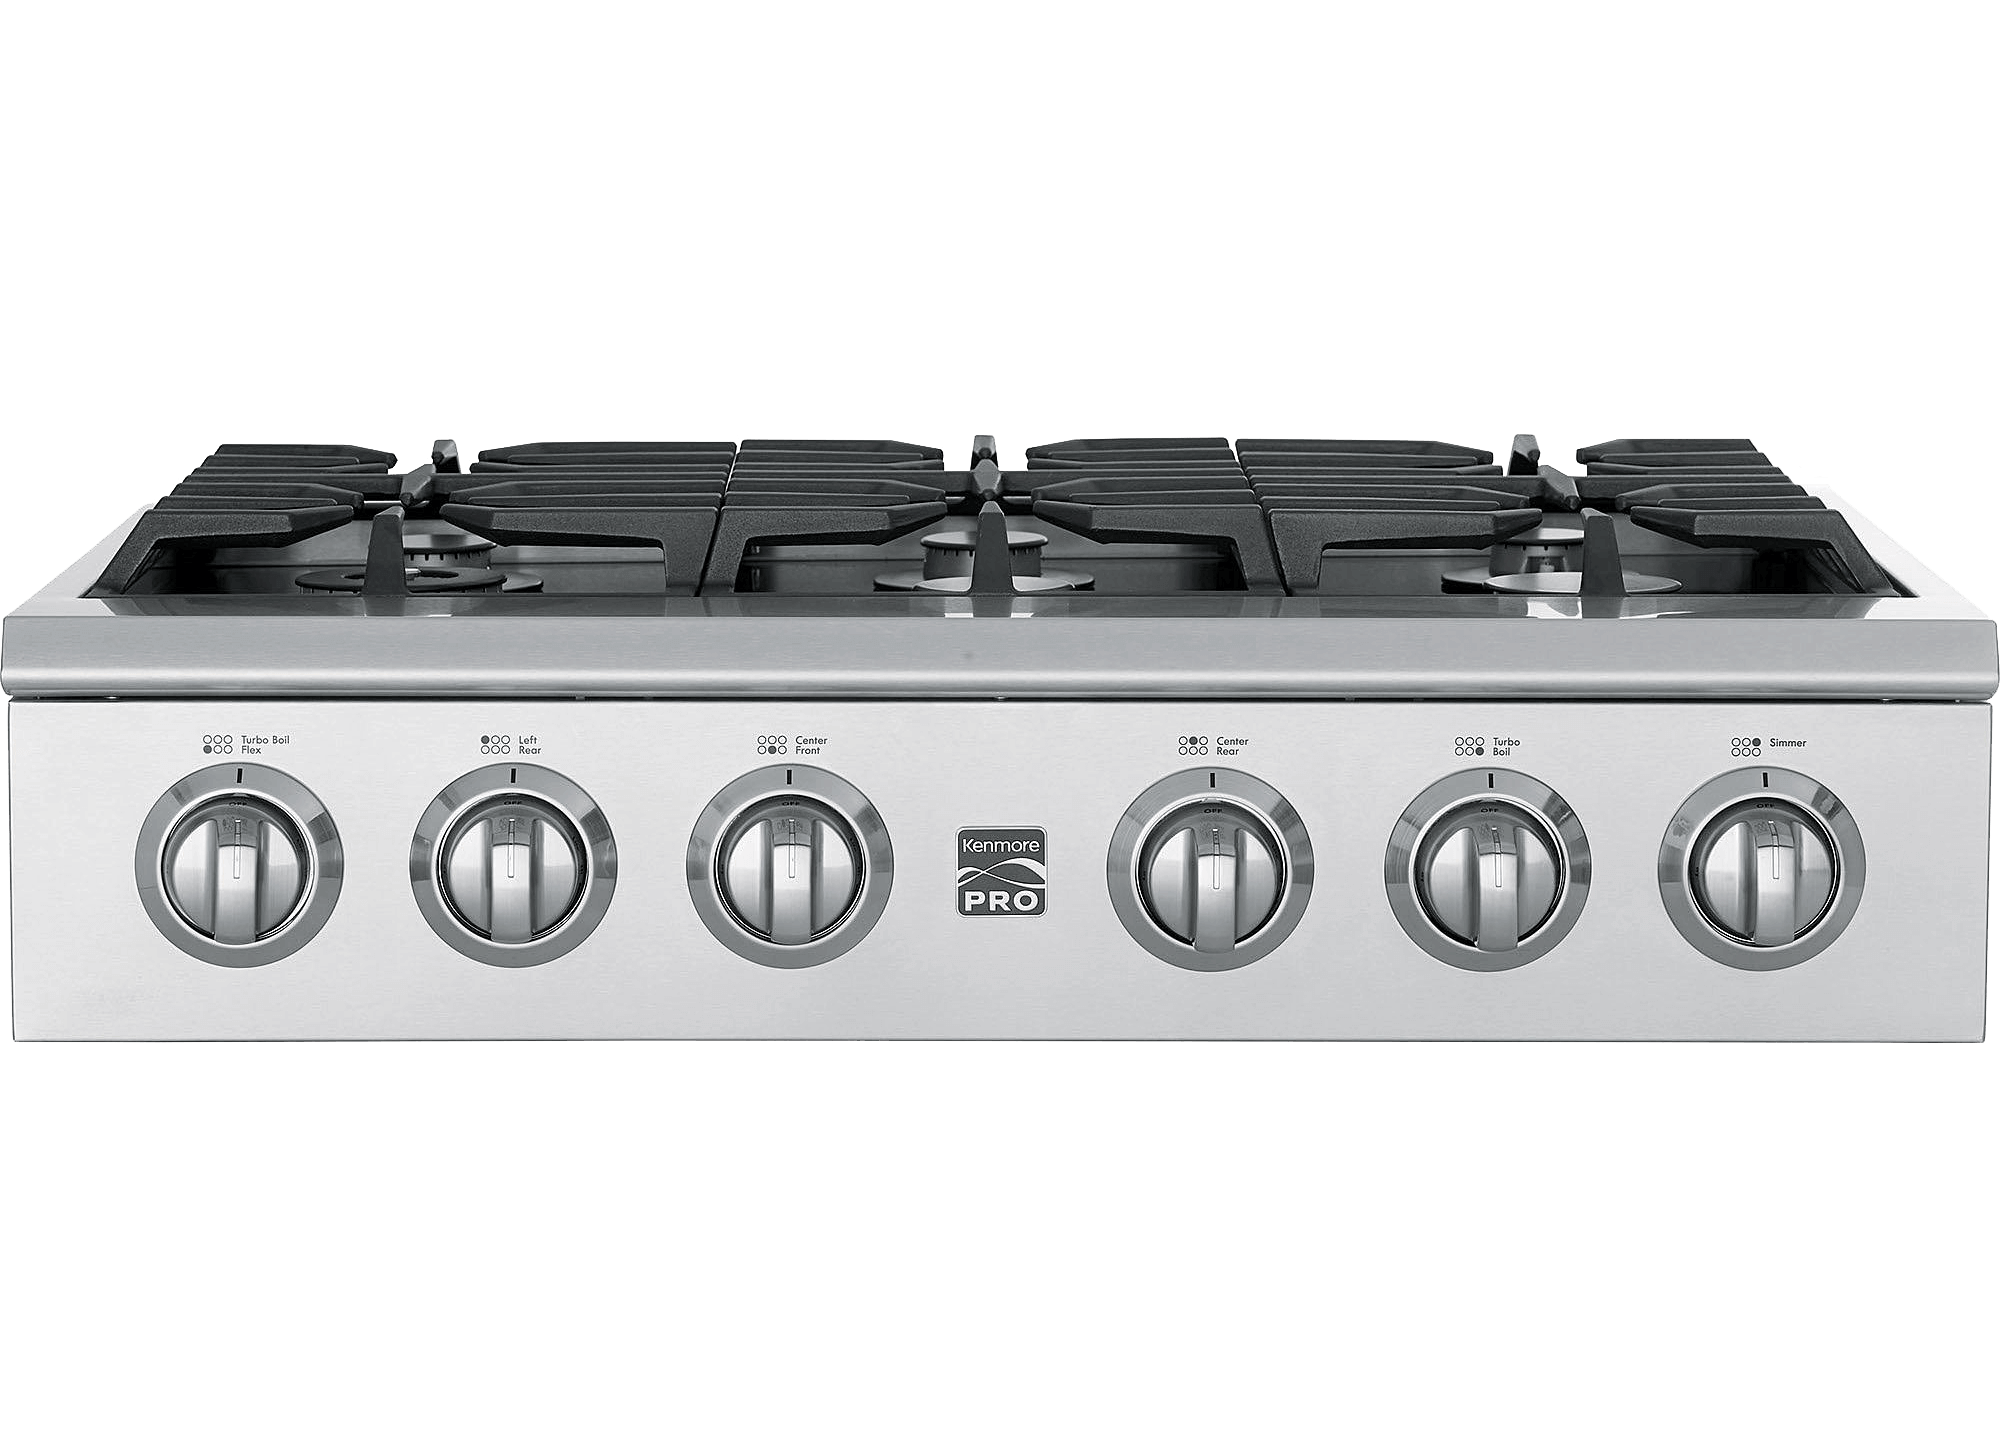 Cooktops   Gas, Electric And Downdraft | Kenmore